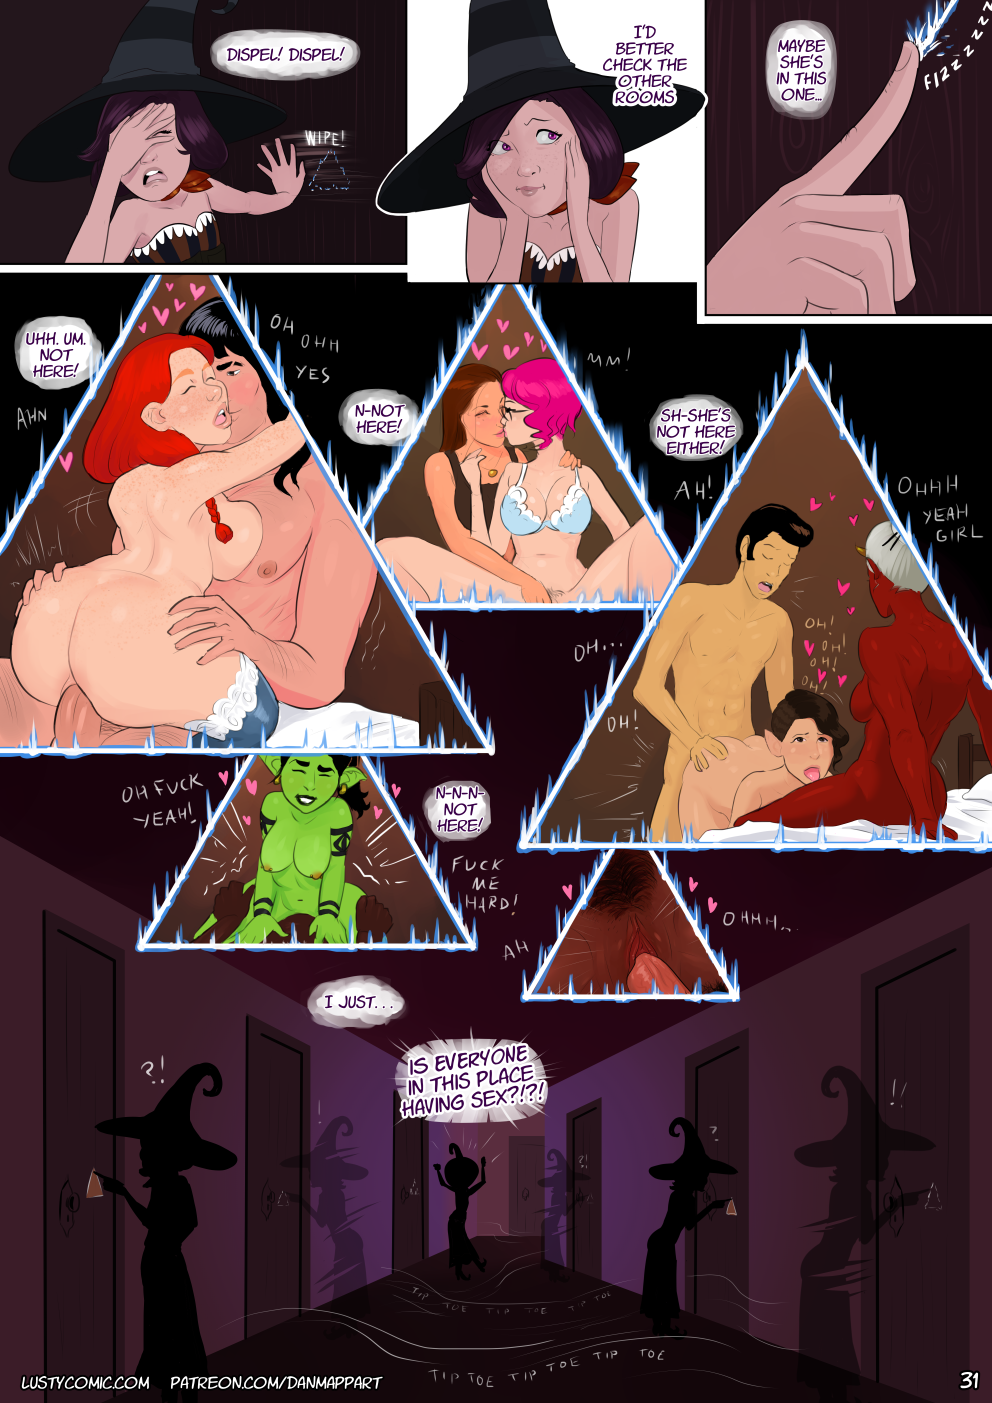 Lusty in Fantastic Breasts and Where to Find Them porn comics Oral sex, Big Tits, cunnilingus, Elf, Fantasy, fingering, Group Sex, Hardcore, Lesbians, Monster Girls, Sex and Magic, Stockings, Straight, Threesome